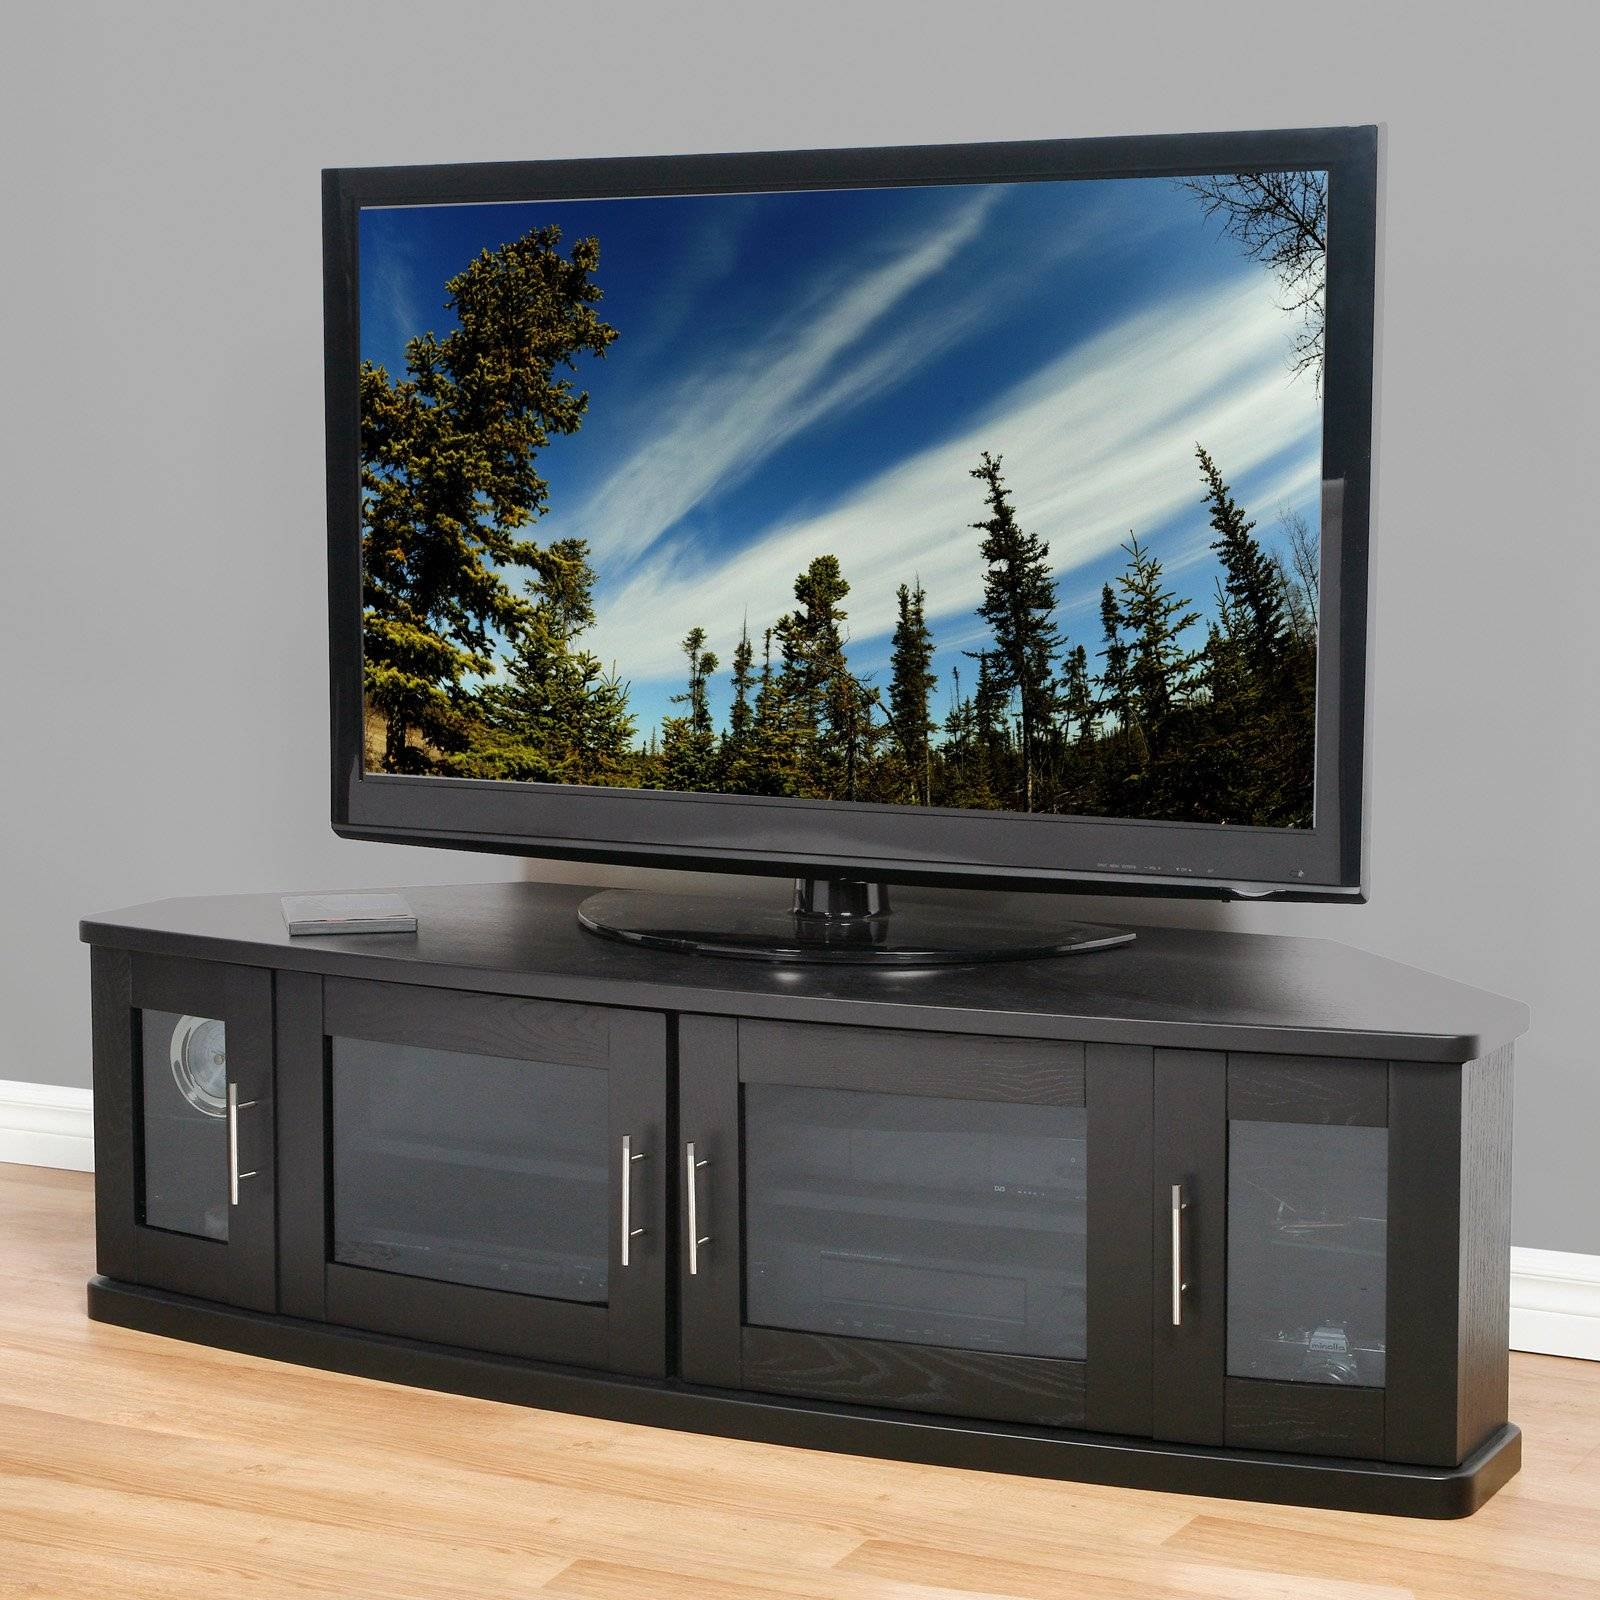 cabinet dvd glass horizon drawers venture prepac storage with cd shaker doors grande media black locking